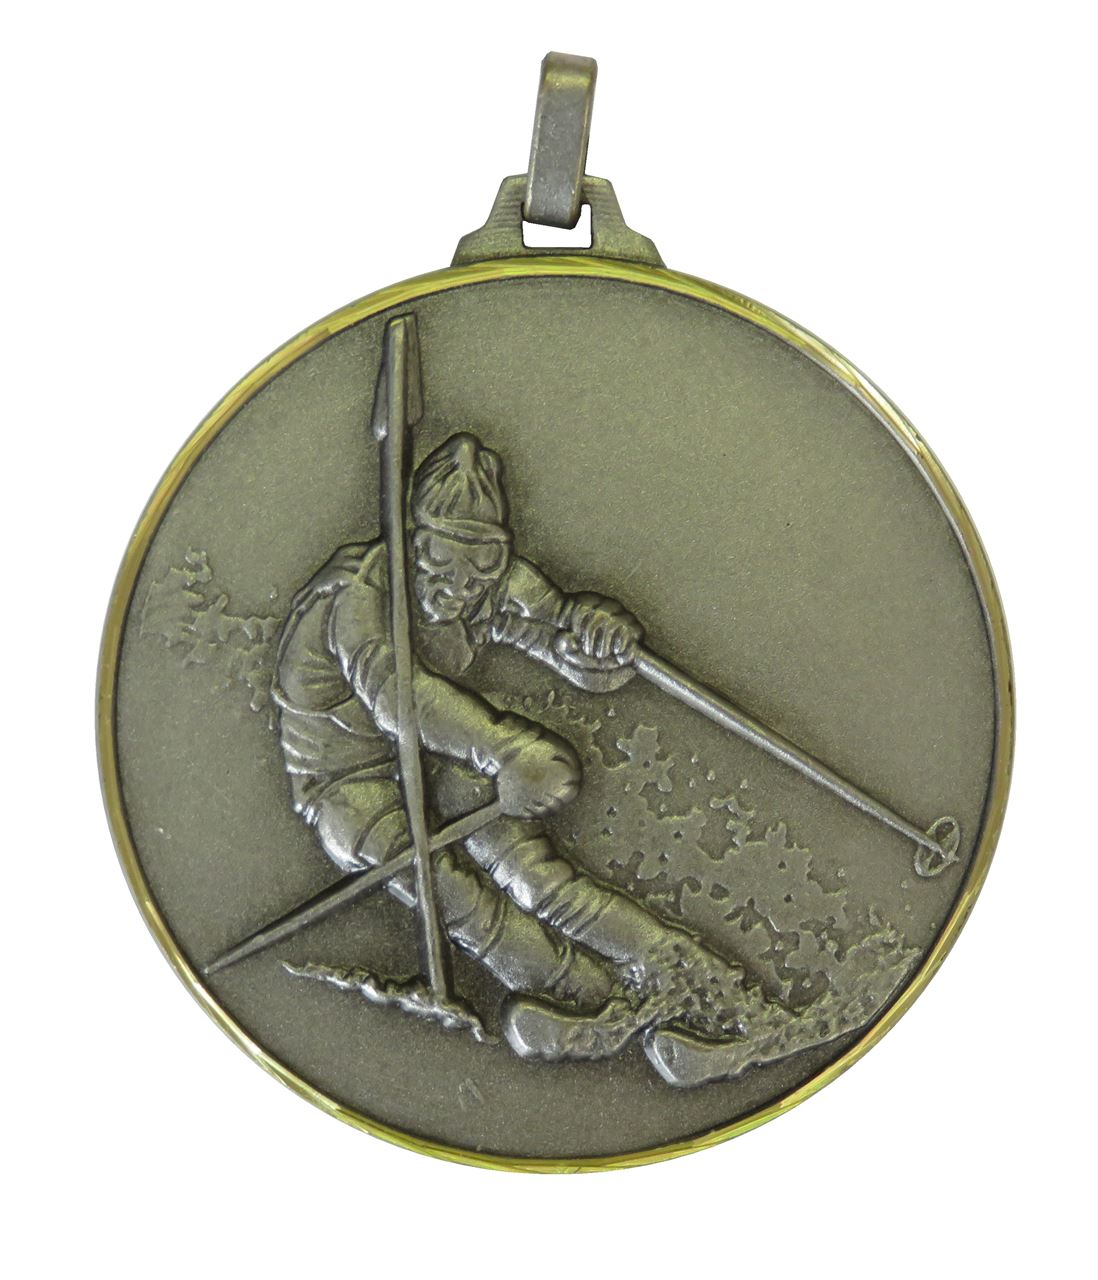 Slver Faceted Skiing Medal (size: 52mm) - 286F/52S